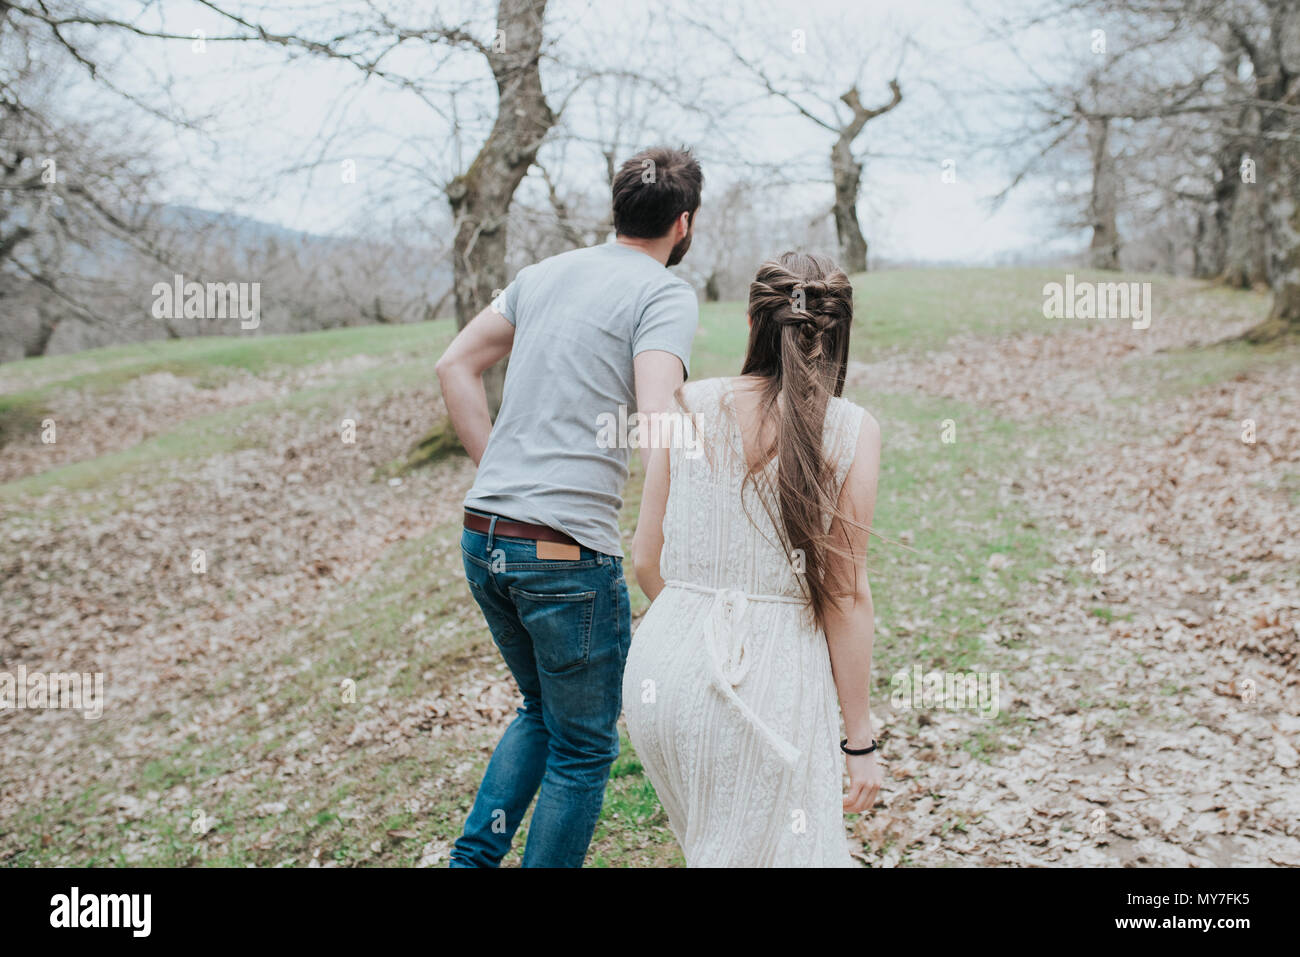 Couple walking in park - Stock Image